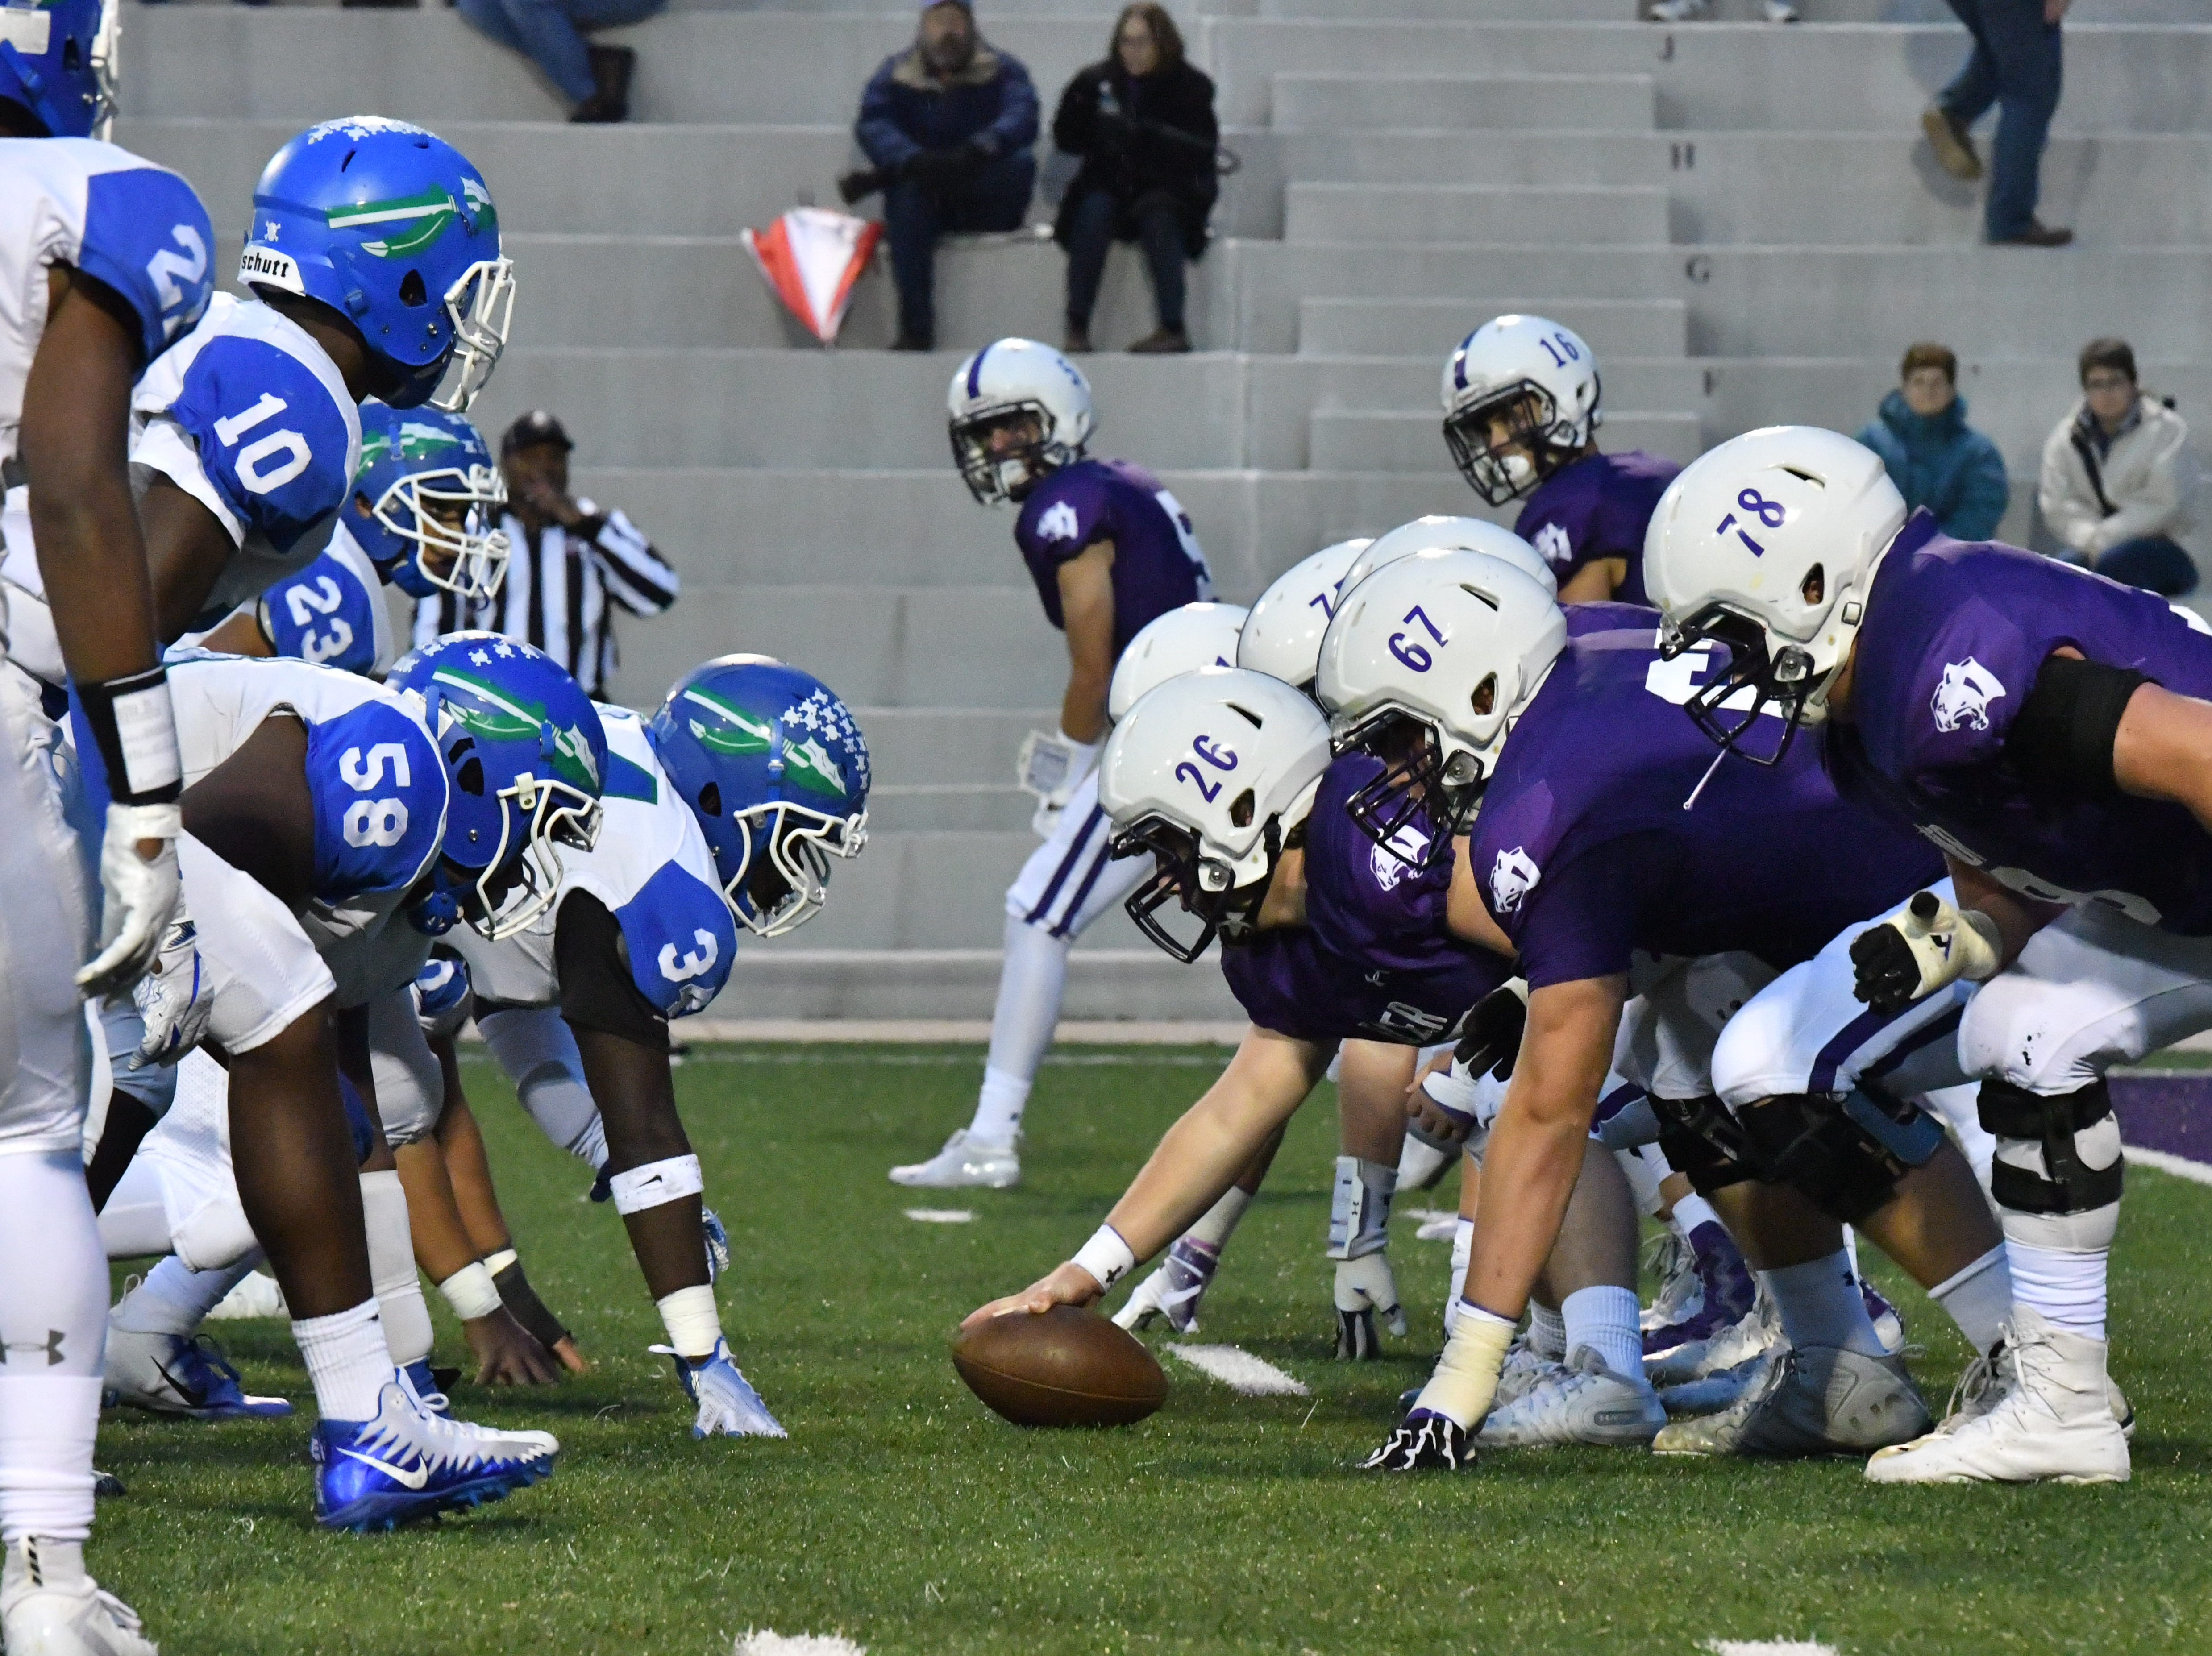 Winton Woods traveled to the Pit to take on the Elder Panthers Friday, Oct. 12, 2018 at High School